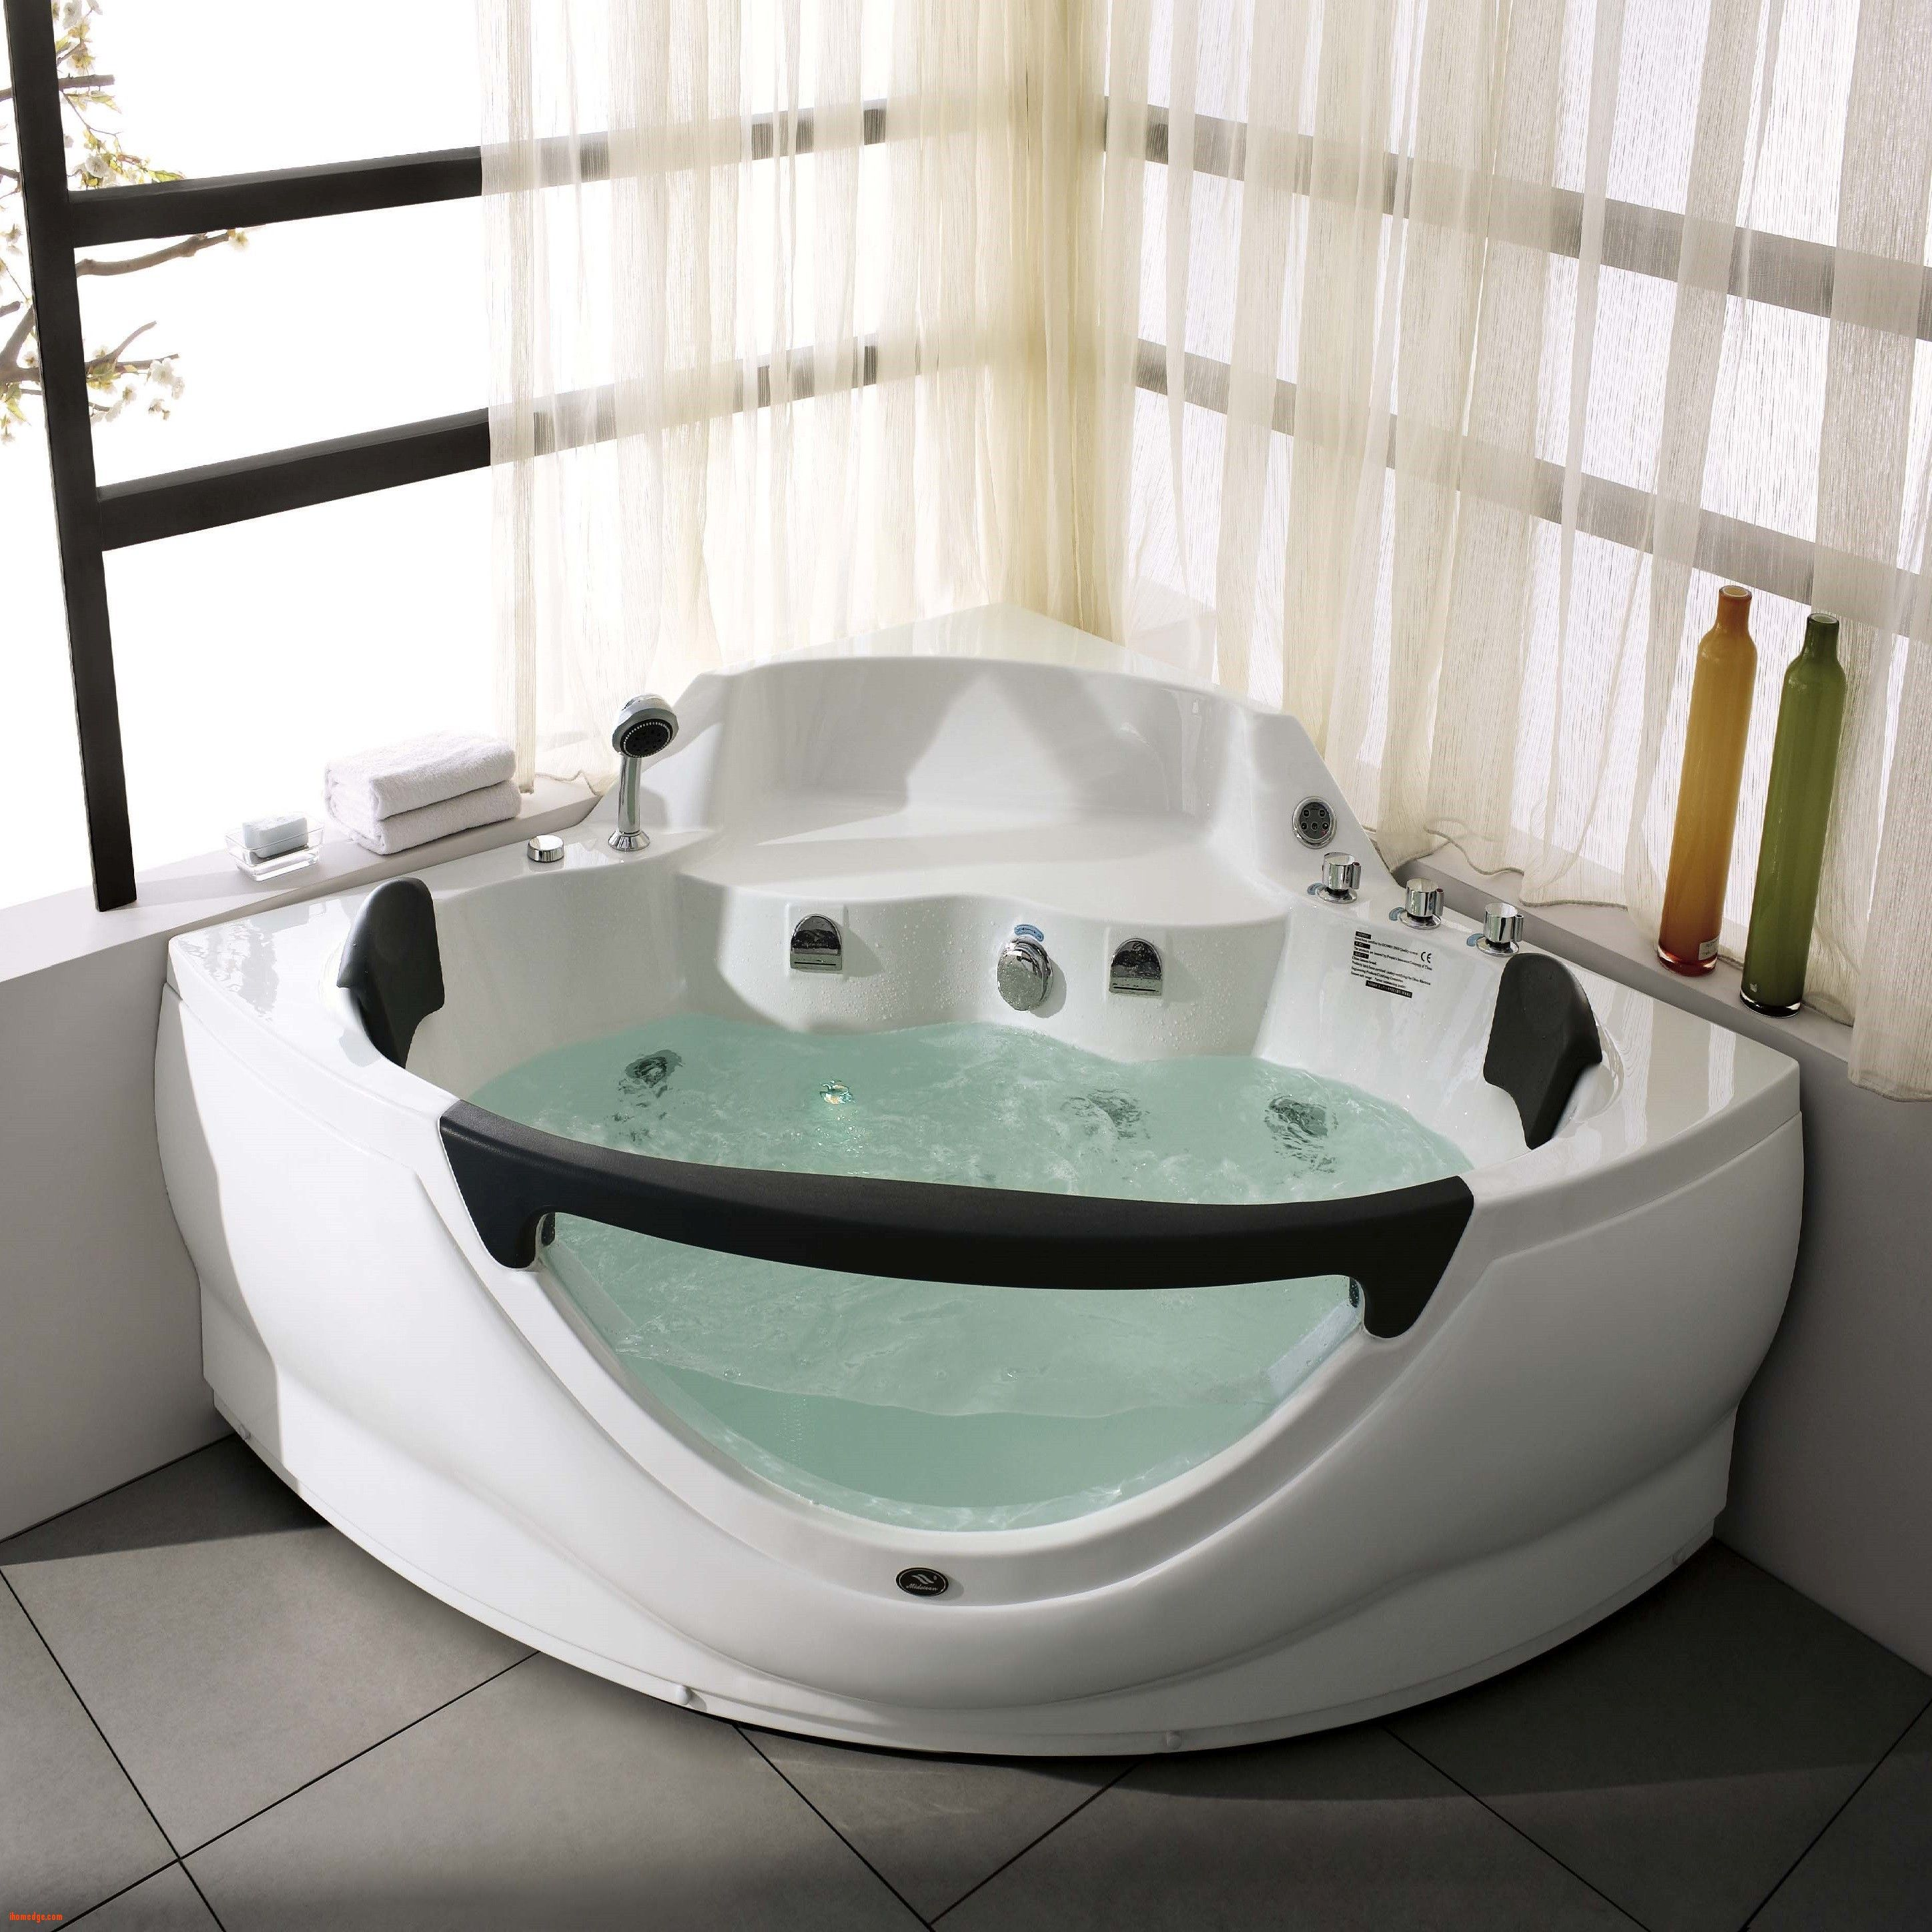 Pin by ihomedge on Bathroom | Pinterest | Jetted tub, Bathtubs and Tubs